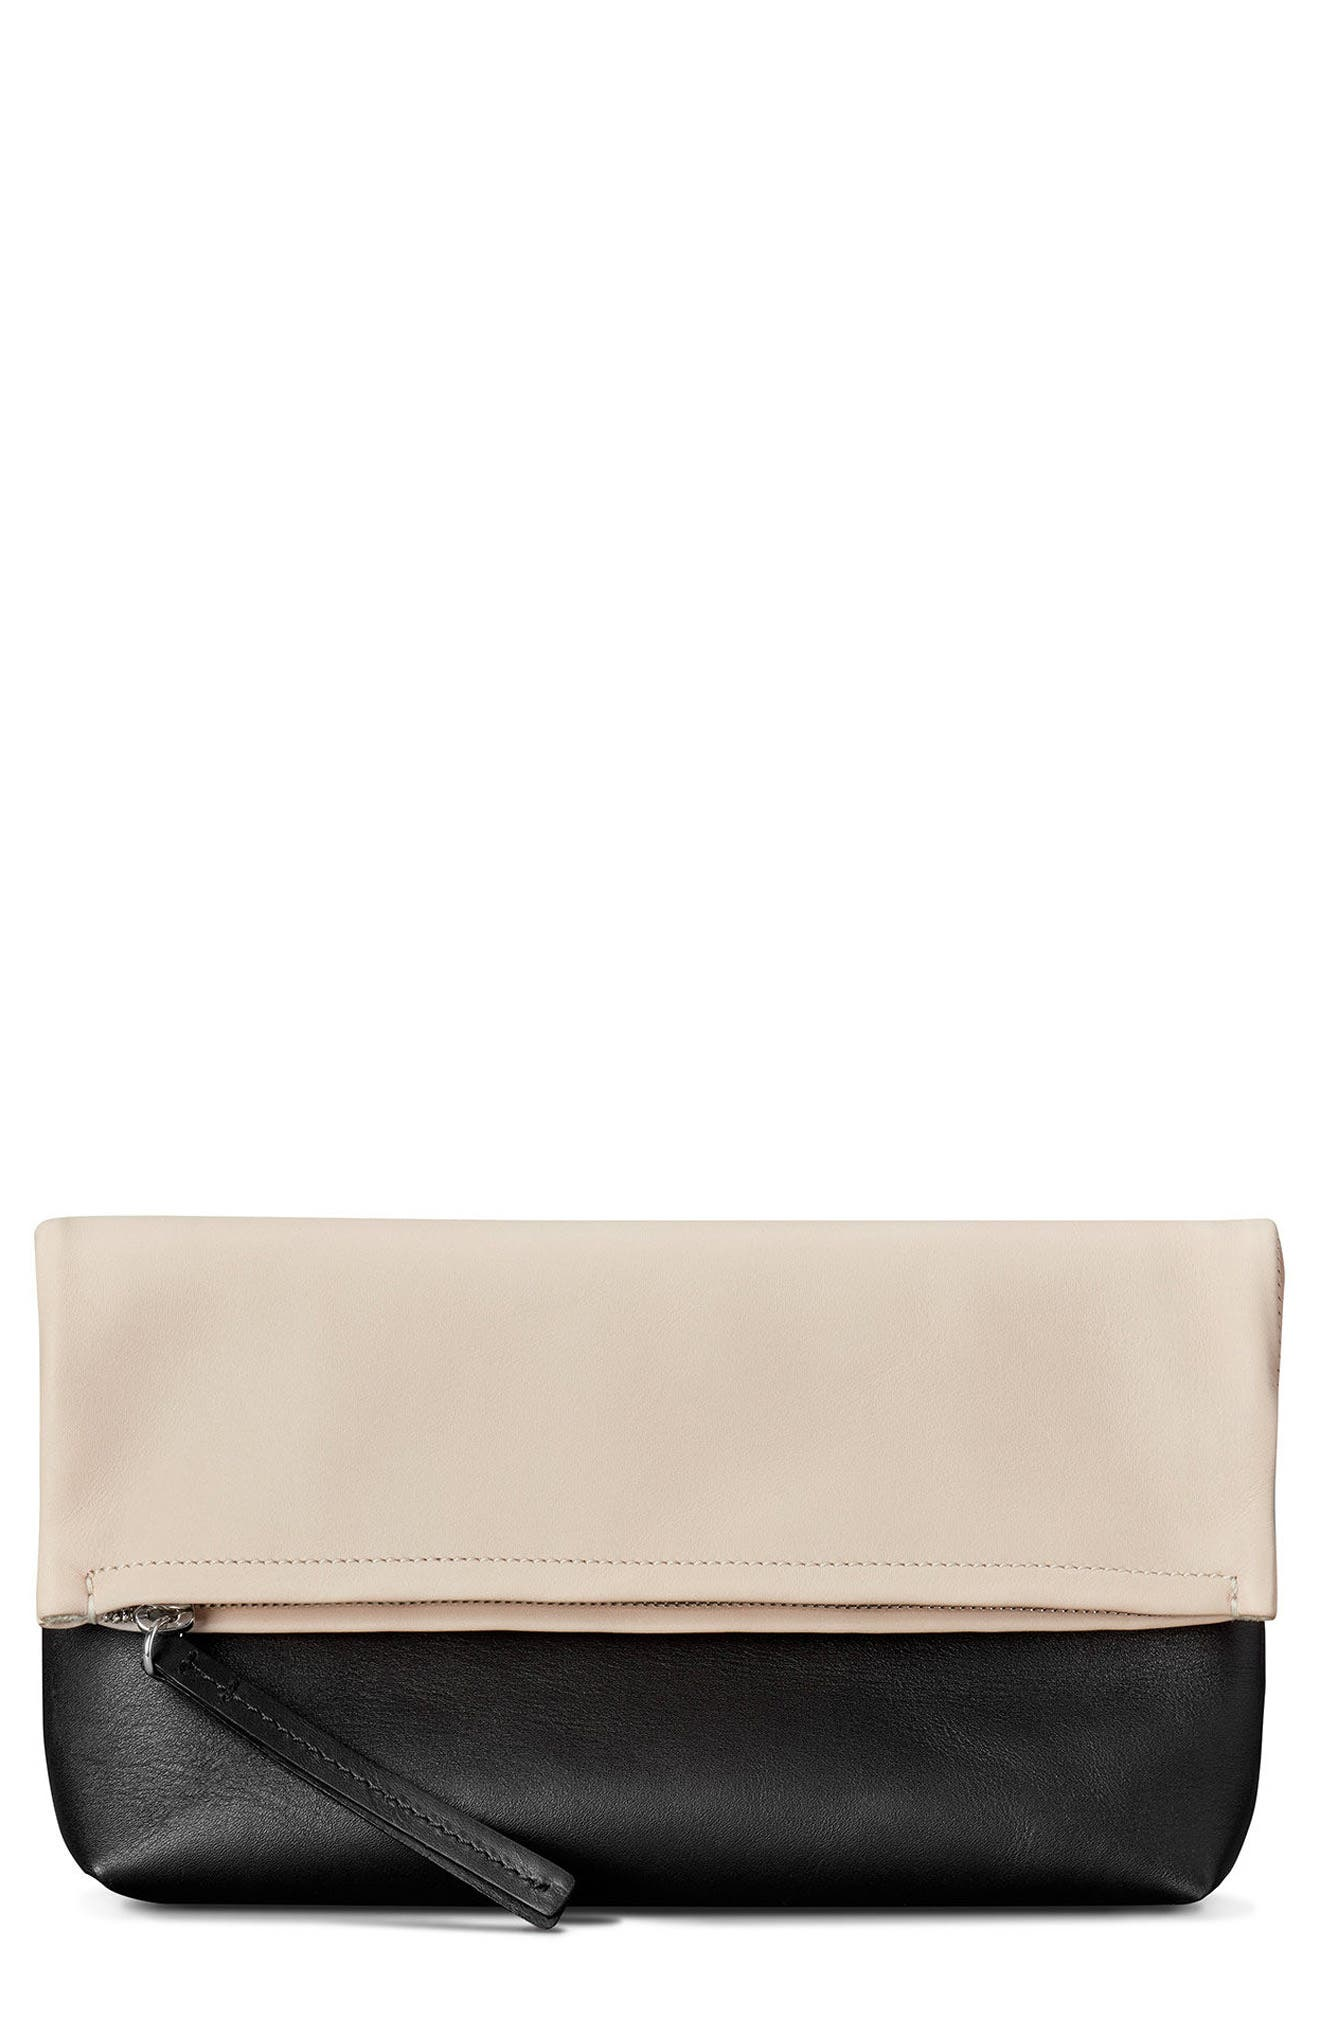 Shinola Birdy Leather Foldover Clutch